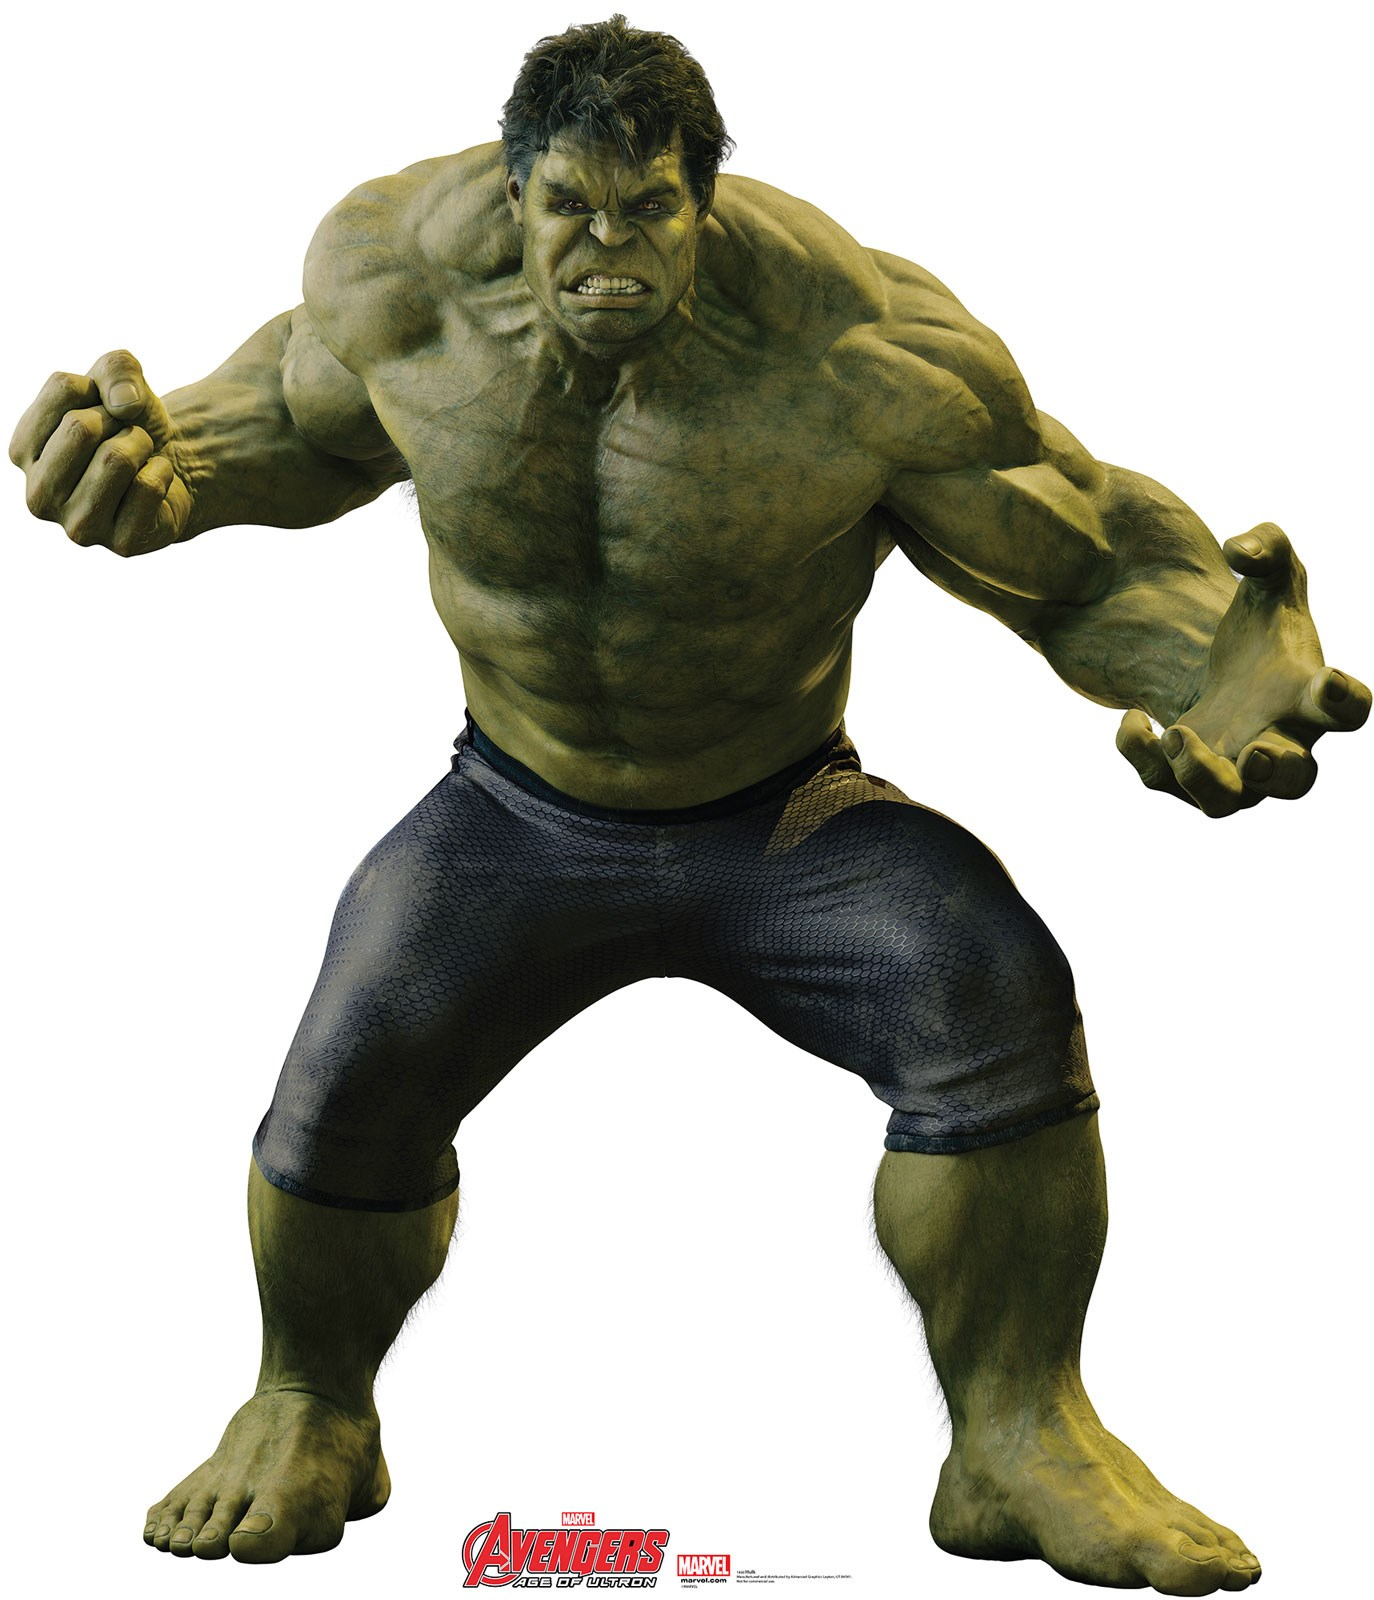 Marvel Avengers Age of Ultron Hulk Standup - 6 Tall